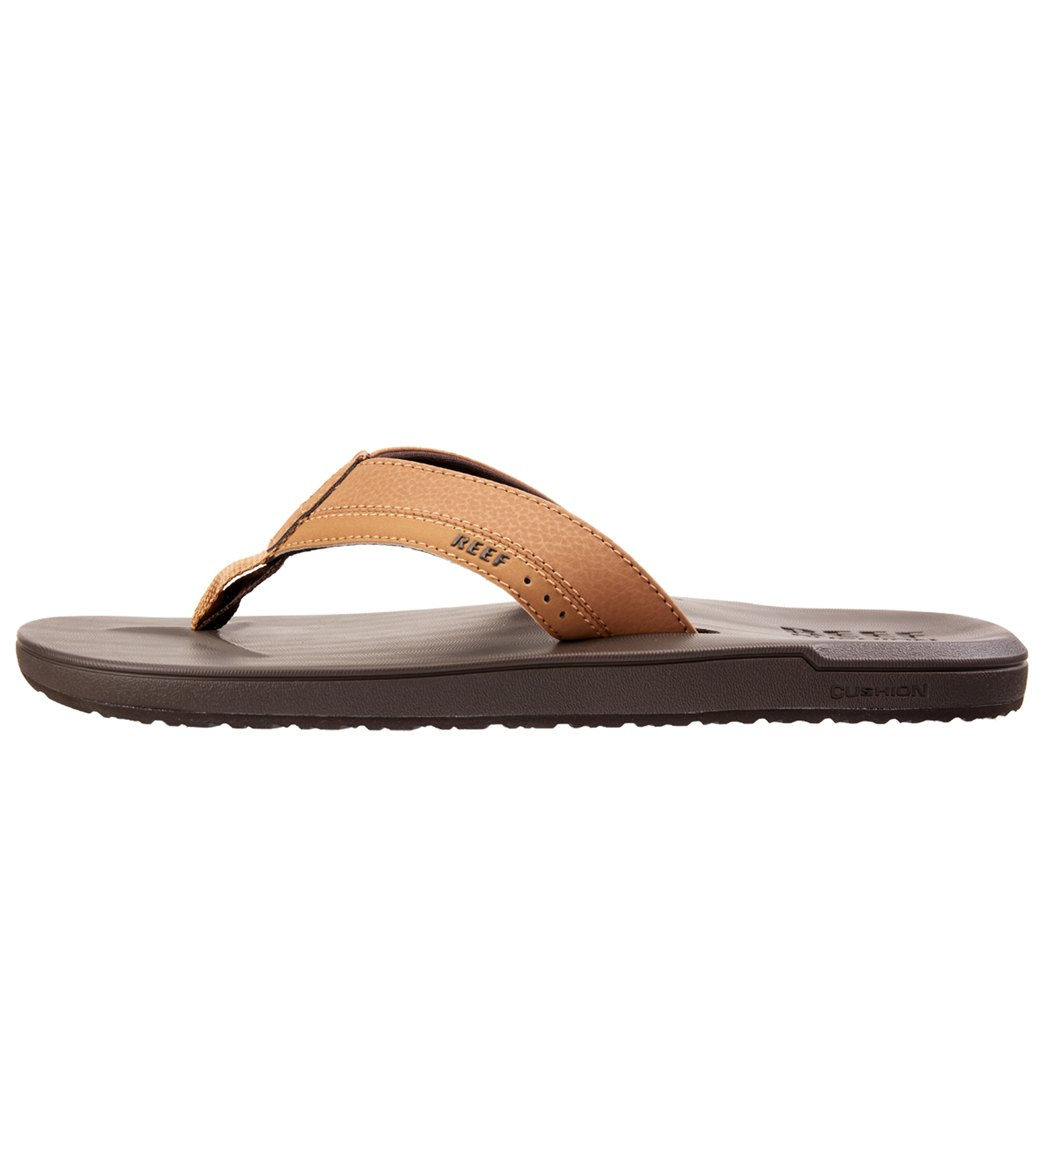 66221455564c Reef Men s Contoured Cushion Flip Flop at SwimOutlet.com